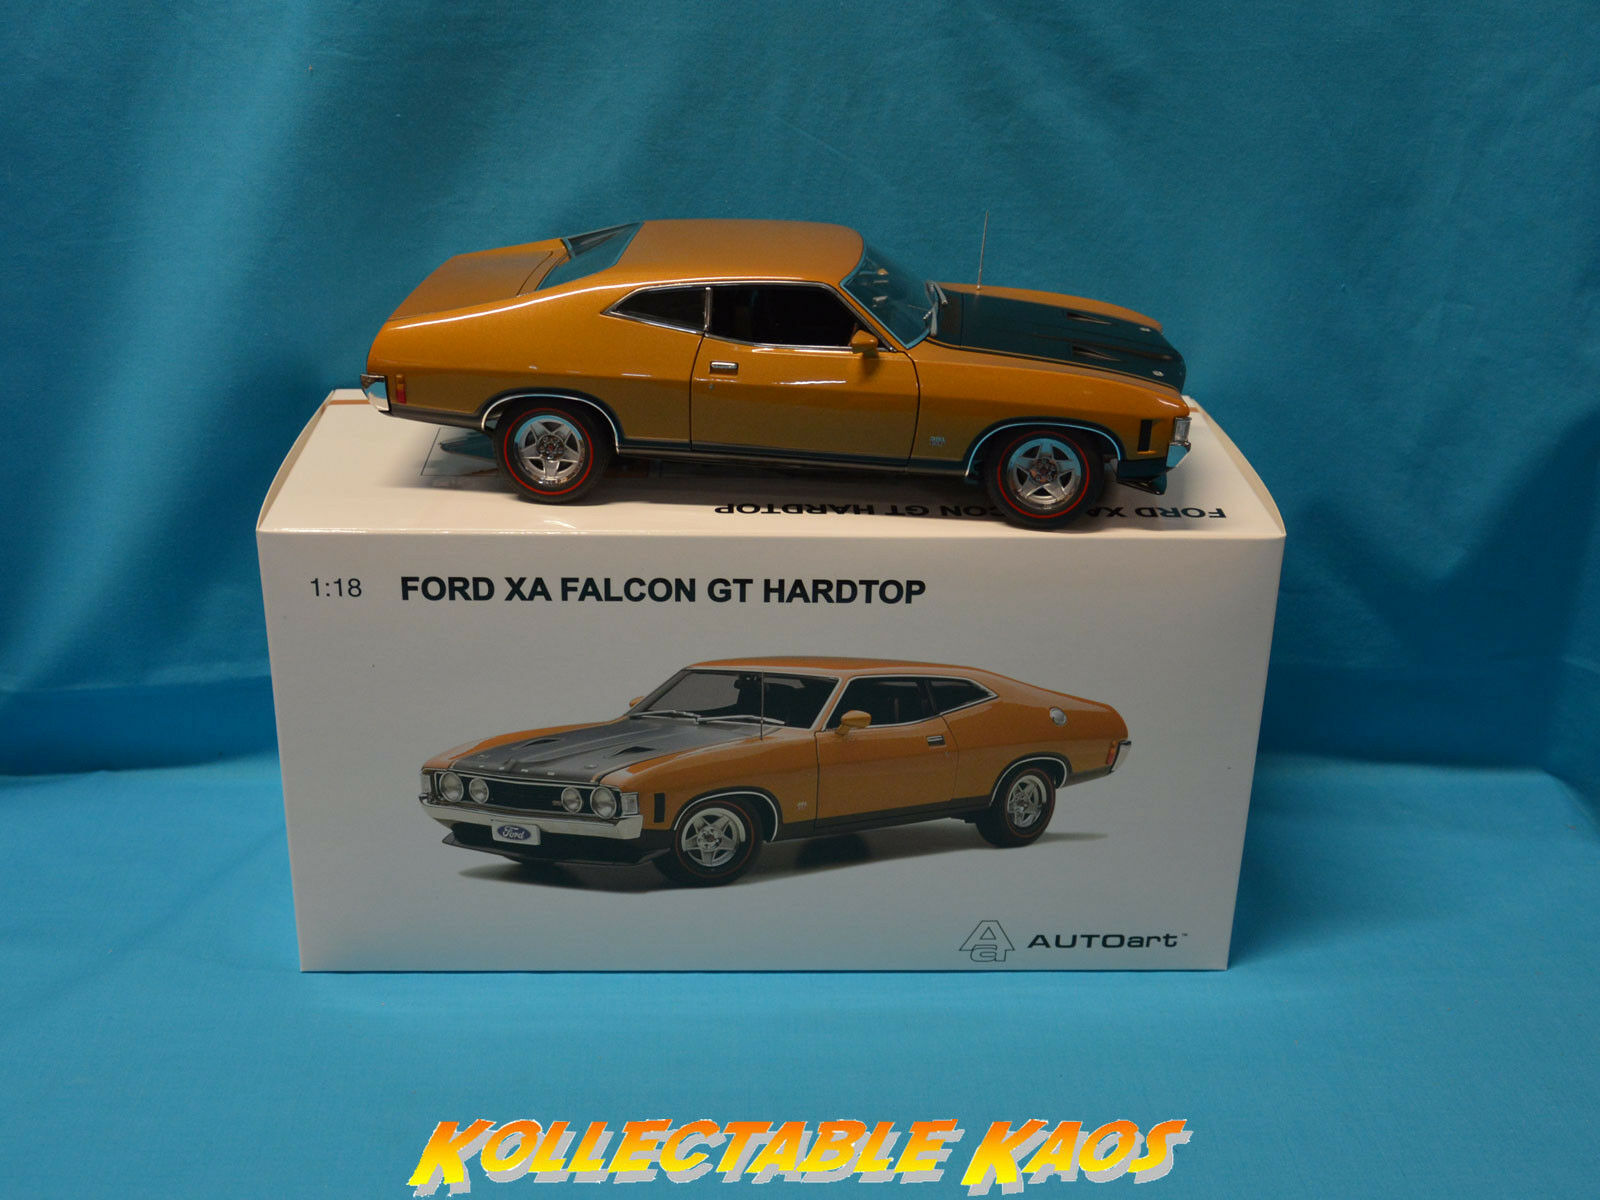 1 18 Biante - 1 18 Ford XA Falcon GT Hard Top - Summer or